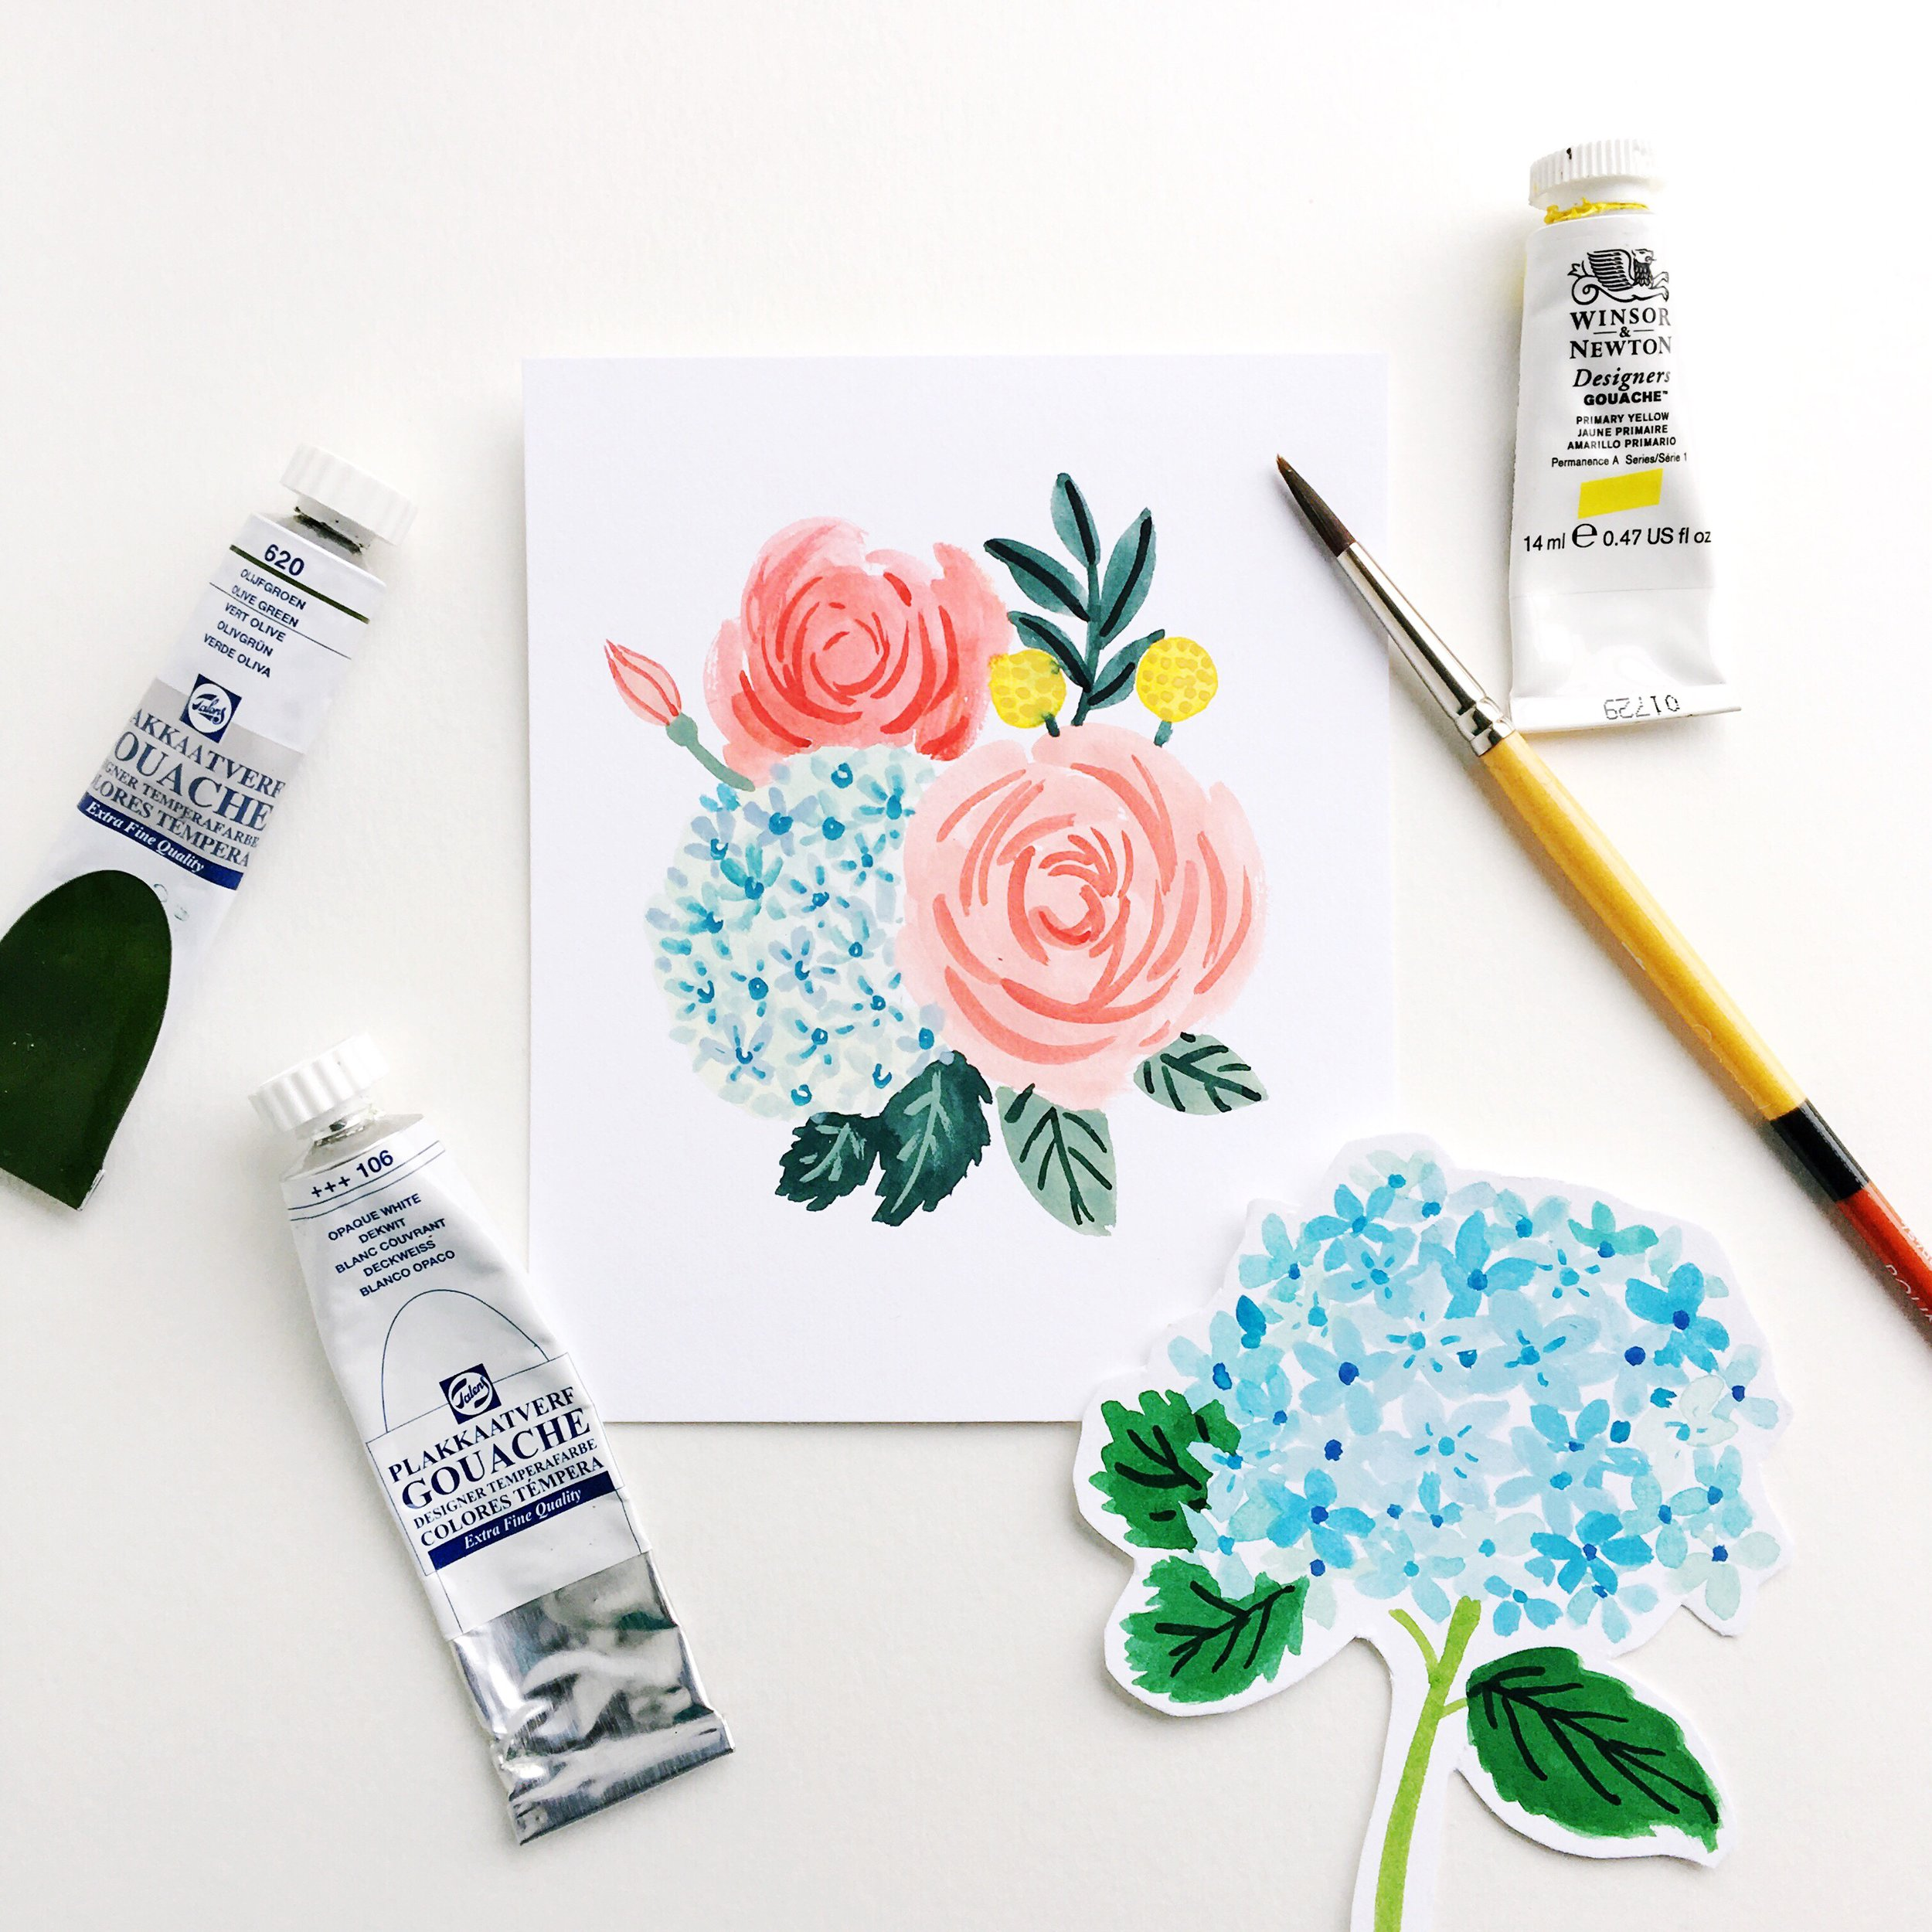 papercraftpantry-workshops-austin-painting-gouache-flowers.jpg